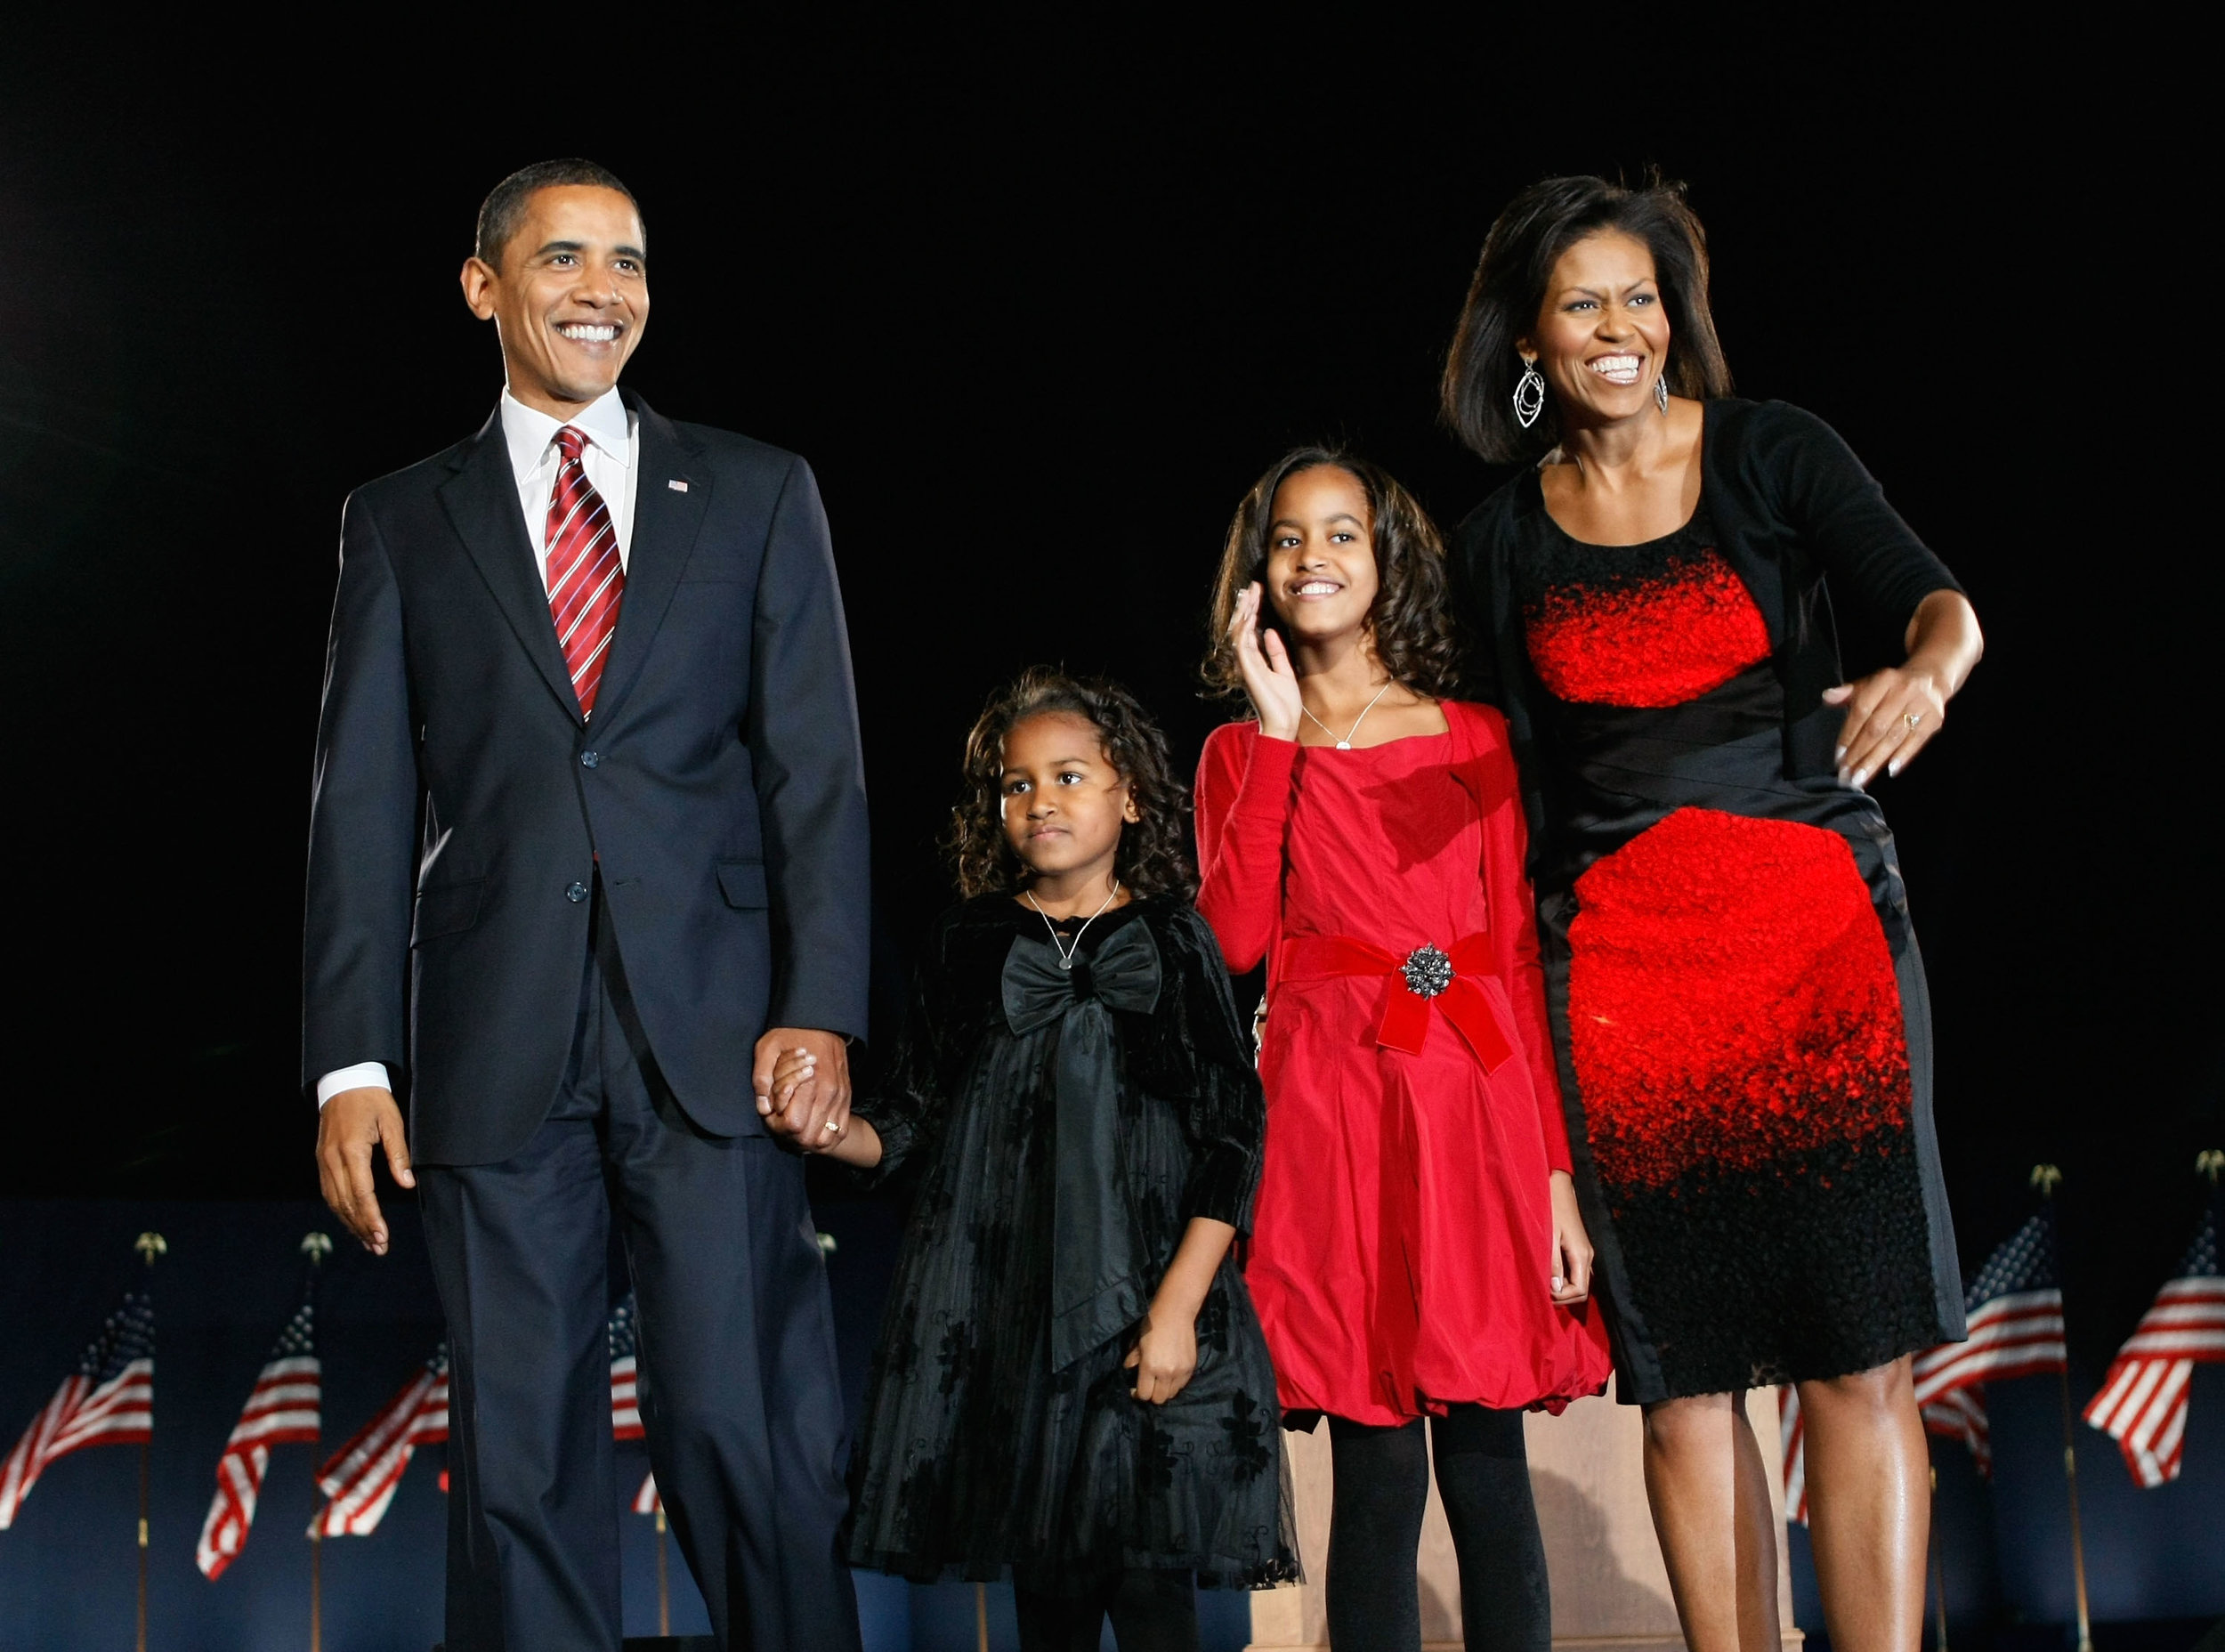 relive-the-historic-moment-obama-won-the-2008-election.jpg